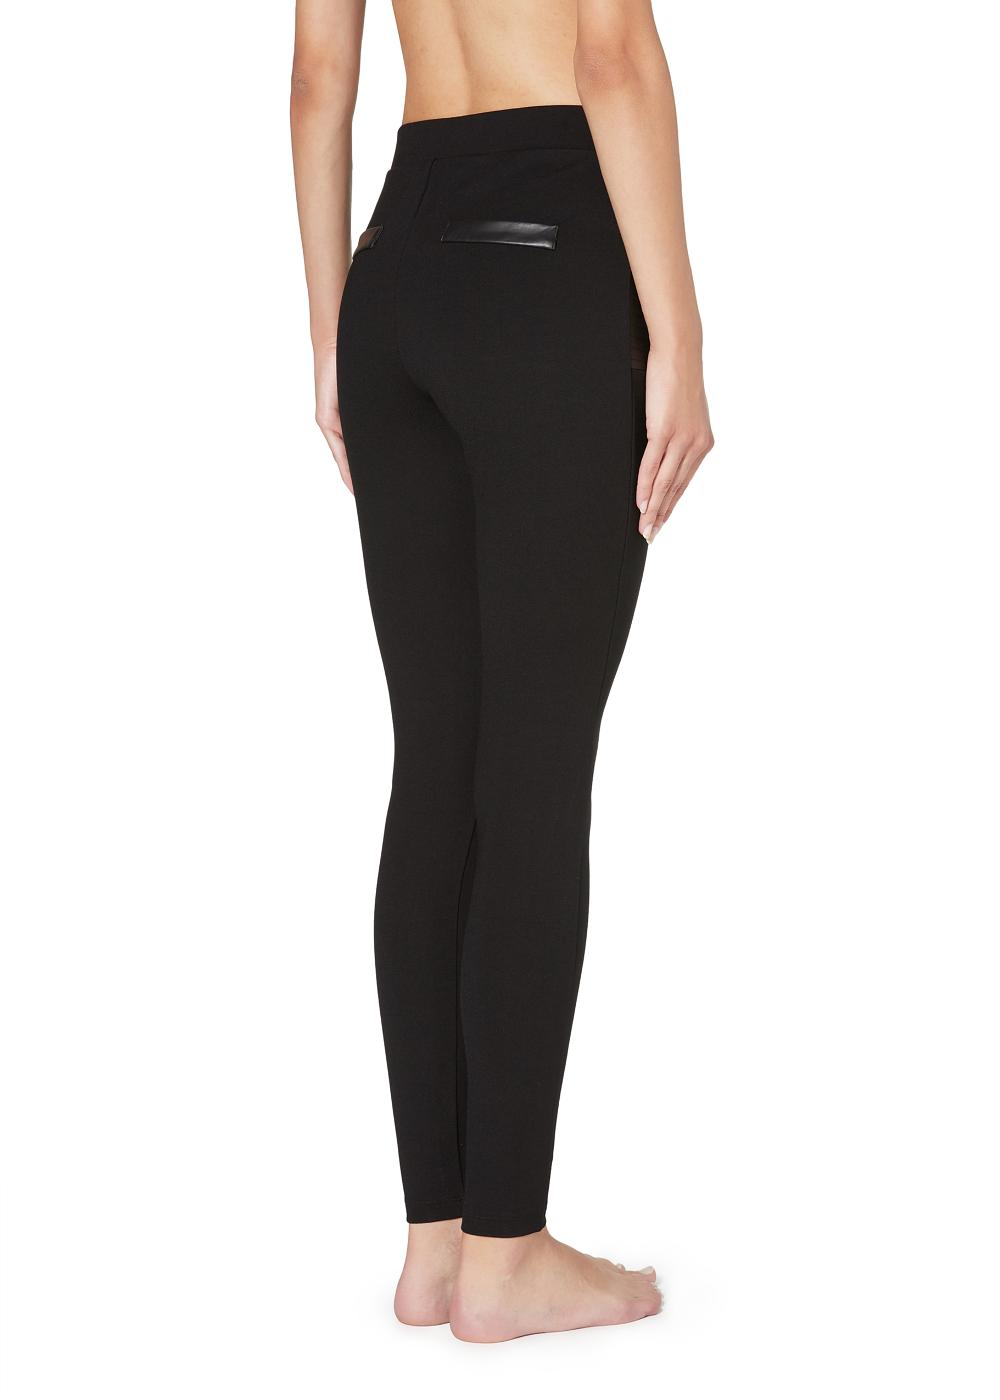 Zip Pocket Leggings